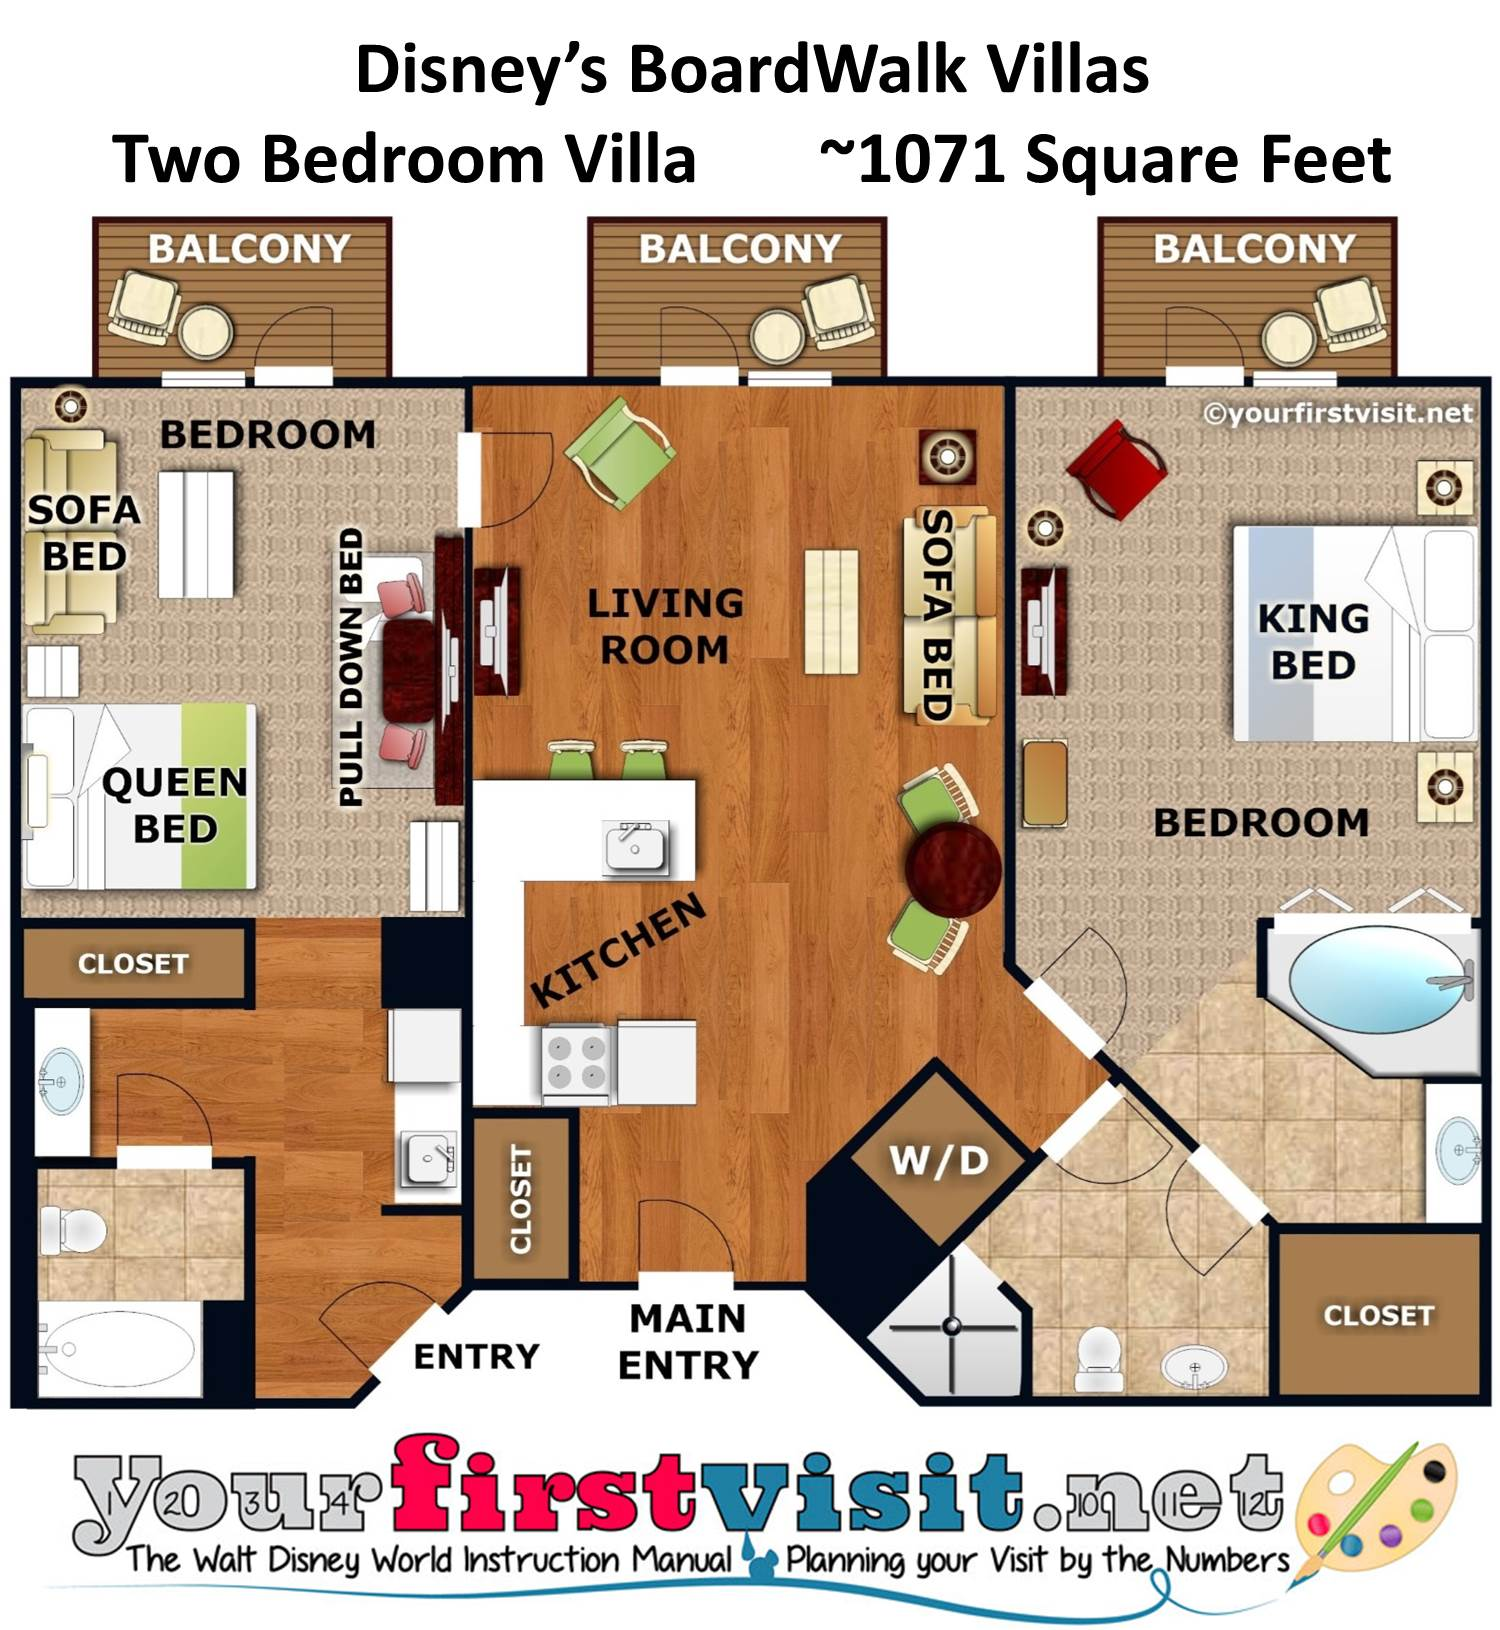 Accommodations and theming at disneys boardwalk villas floor plan two bedroom villa disneys boardwalk villas from yourfirstvisit sciox Image collections